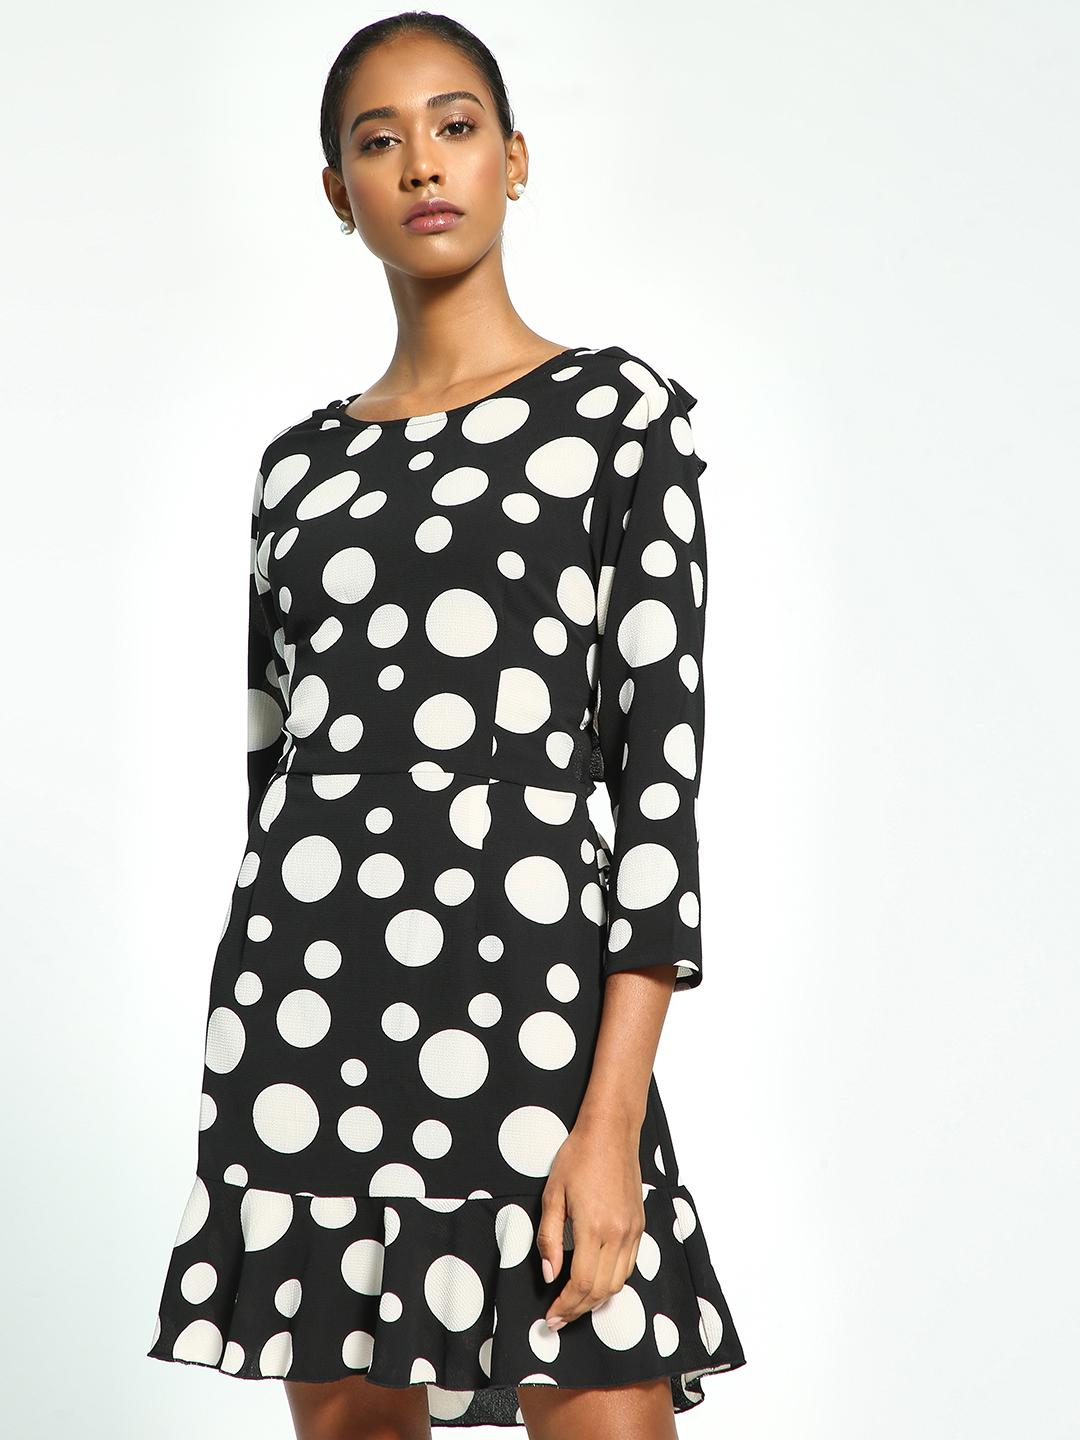 Ri-Dress Multi Polka Dot Print Skater Dress 1